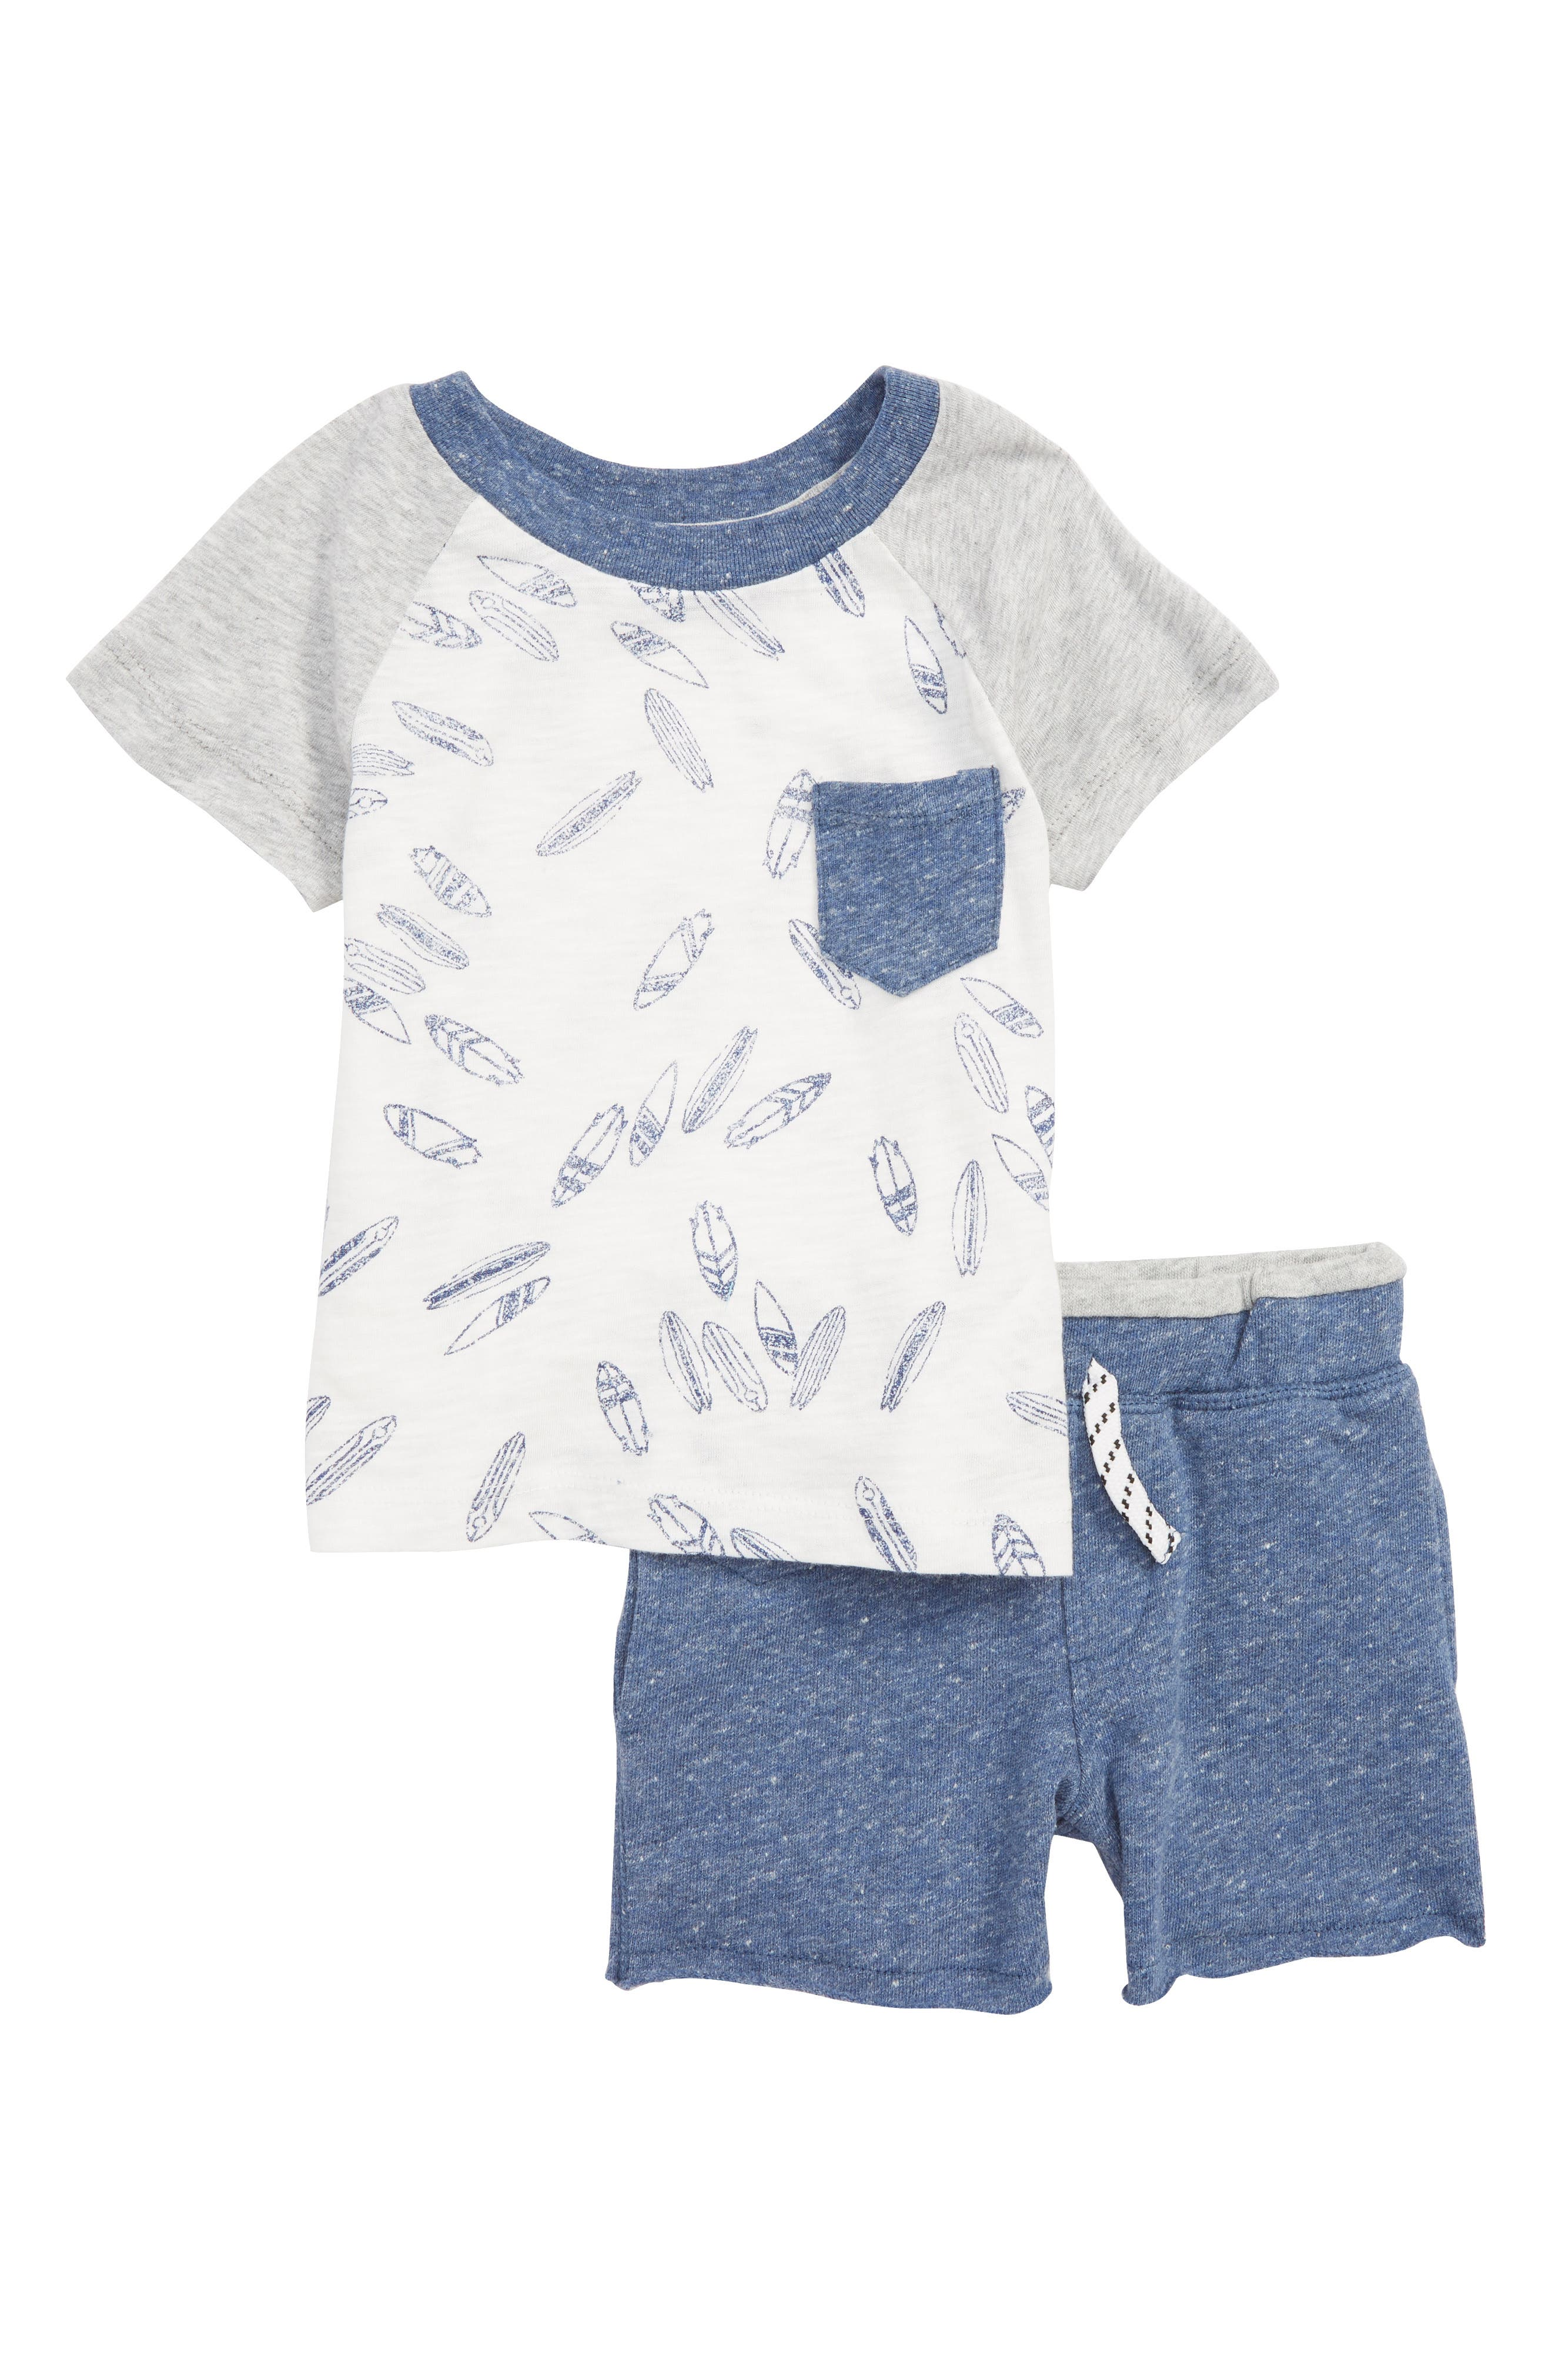 Splendid Surfboard T-Shirt & Shorts Set (Baby Boys)